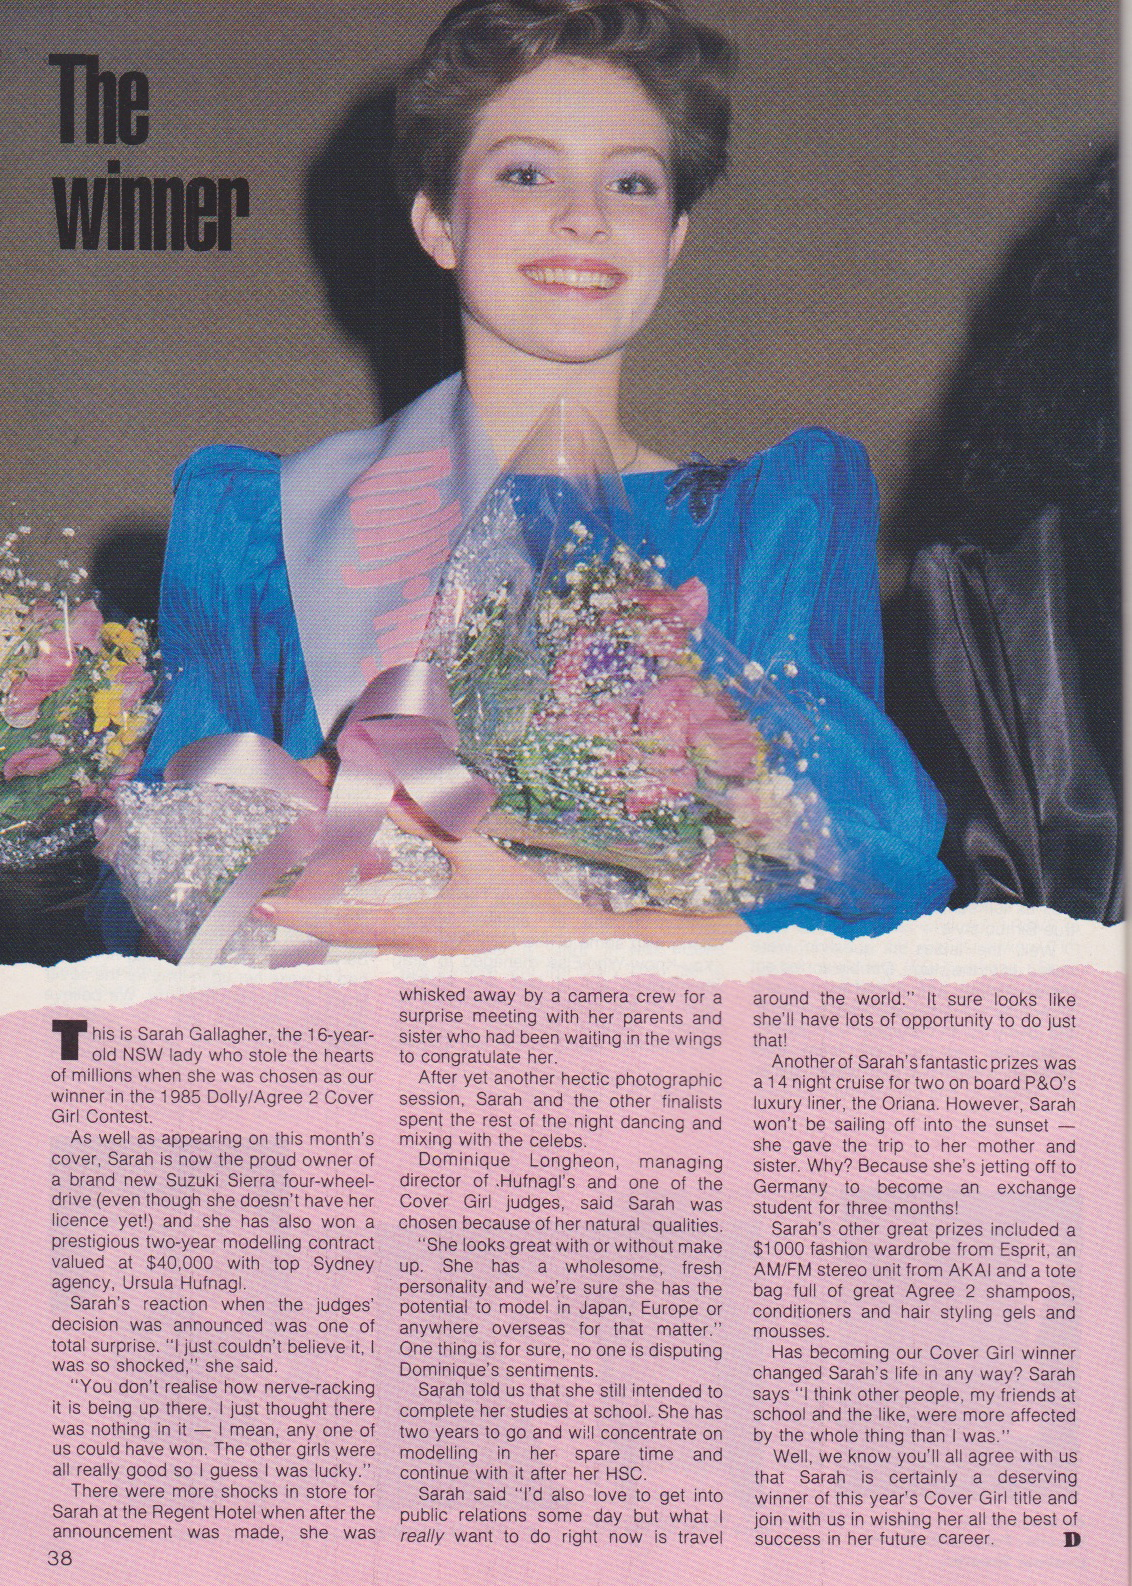 Dolly Covergirl Competition | 1985 Winners Article 05.jpeg